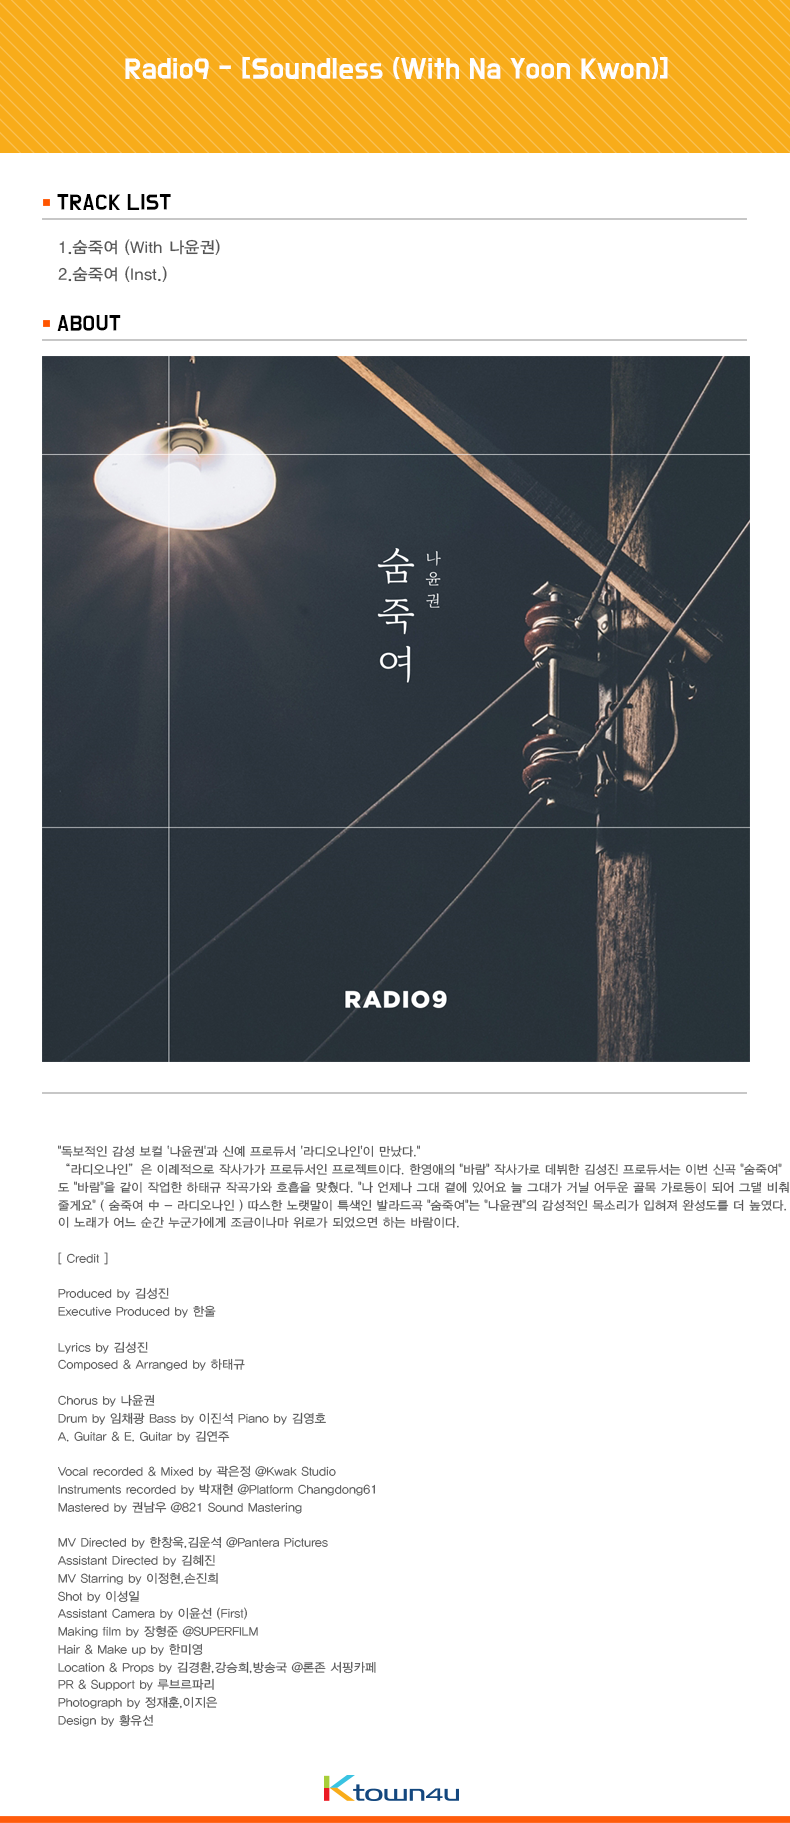 Radio9 - [Soundless (With Na Yoon Kwon)]